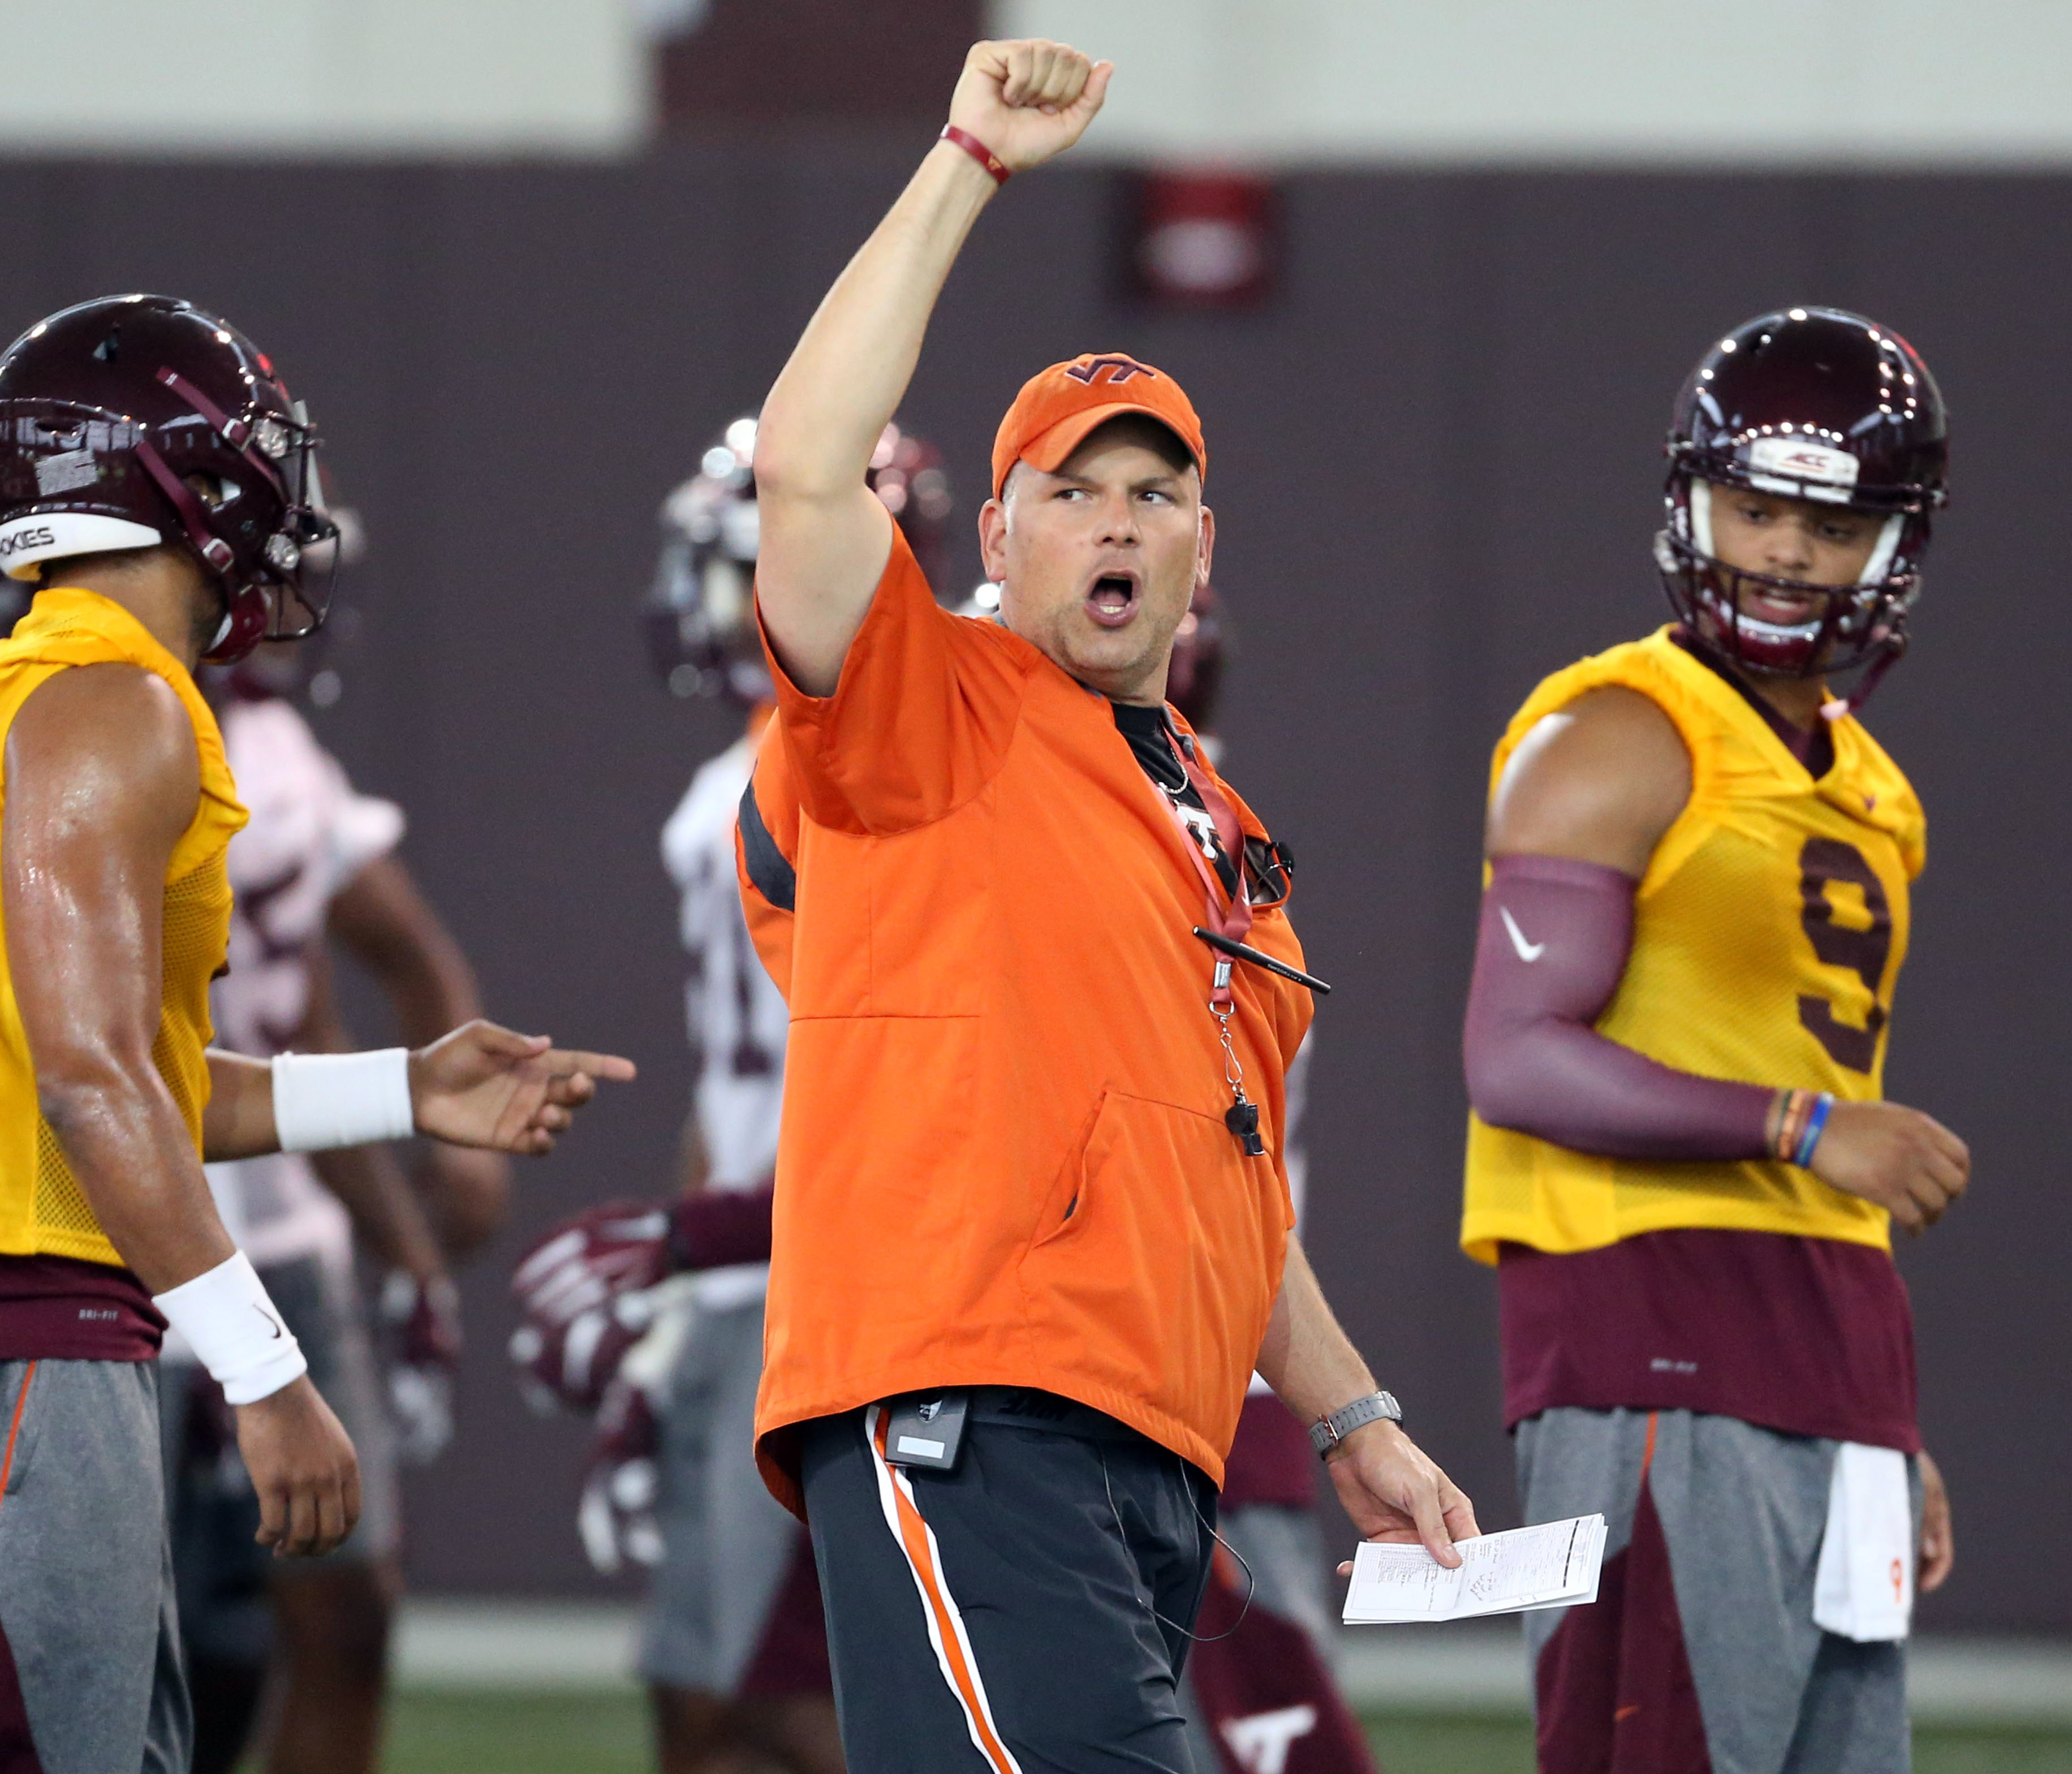 FILE- In this Thursday, Aug. 4, 2016, file photo, Virginia Tech head coach Justin Fuente directs offensive drills as quarterbacks Jerod Evans (4) left, and Brenden Motley (9) right, listen during NCAA college football practice in Blacksburg, Va. Replacing